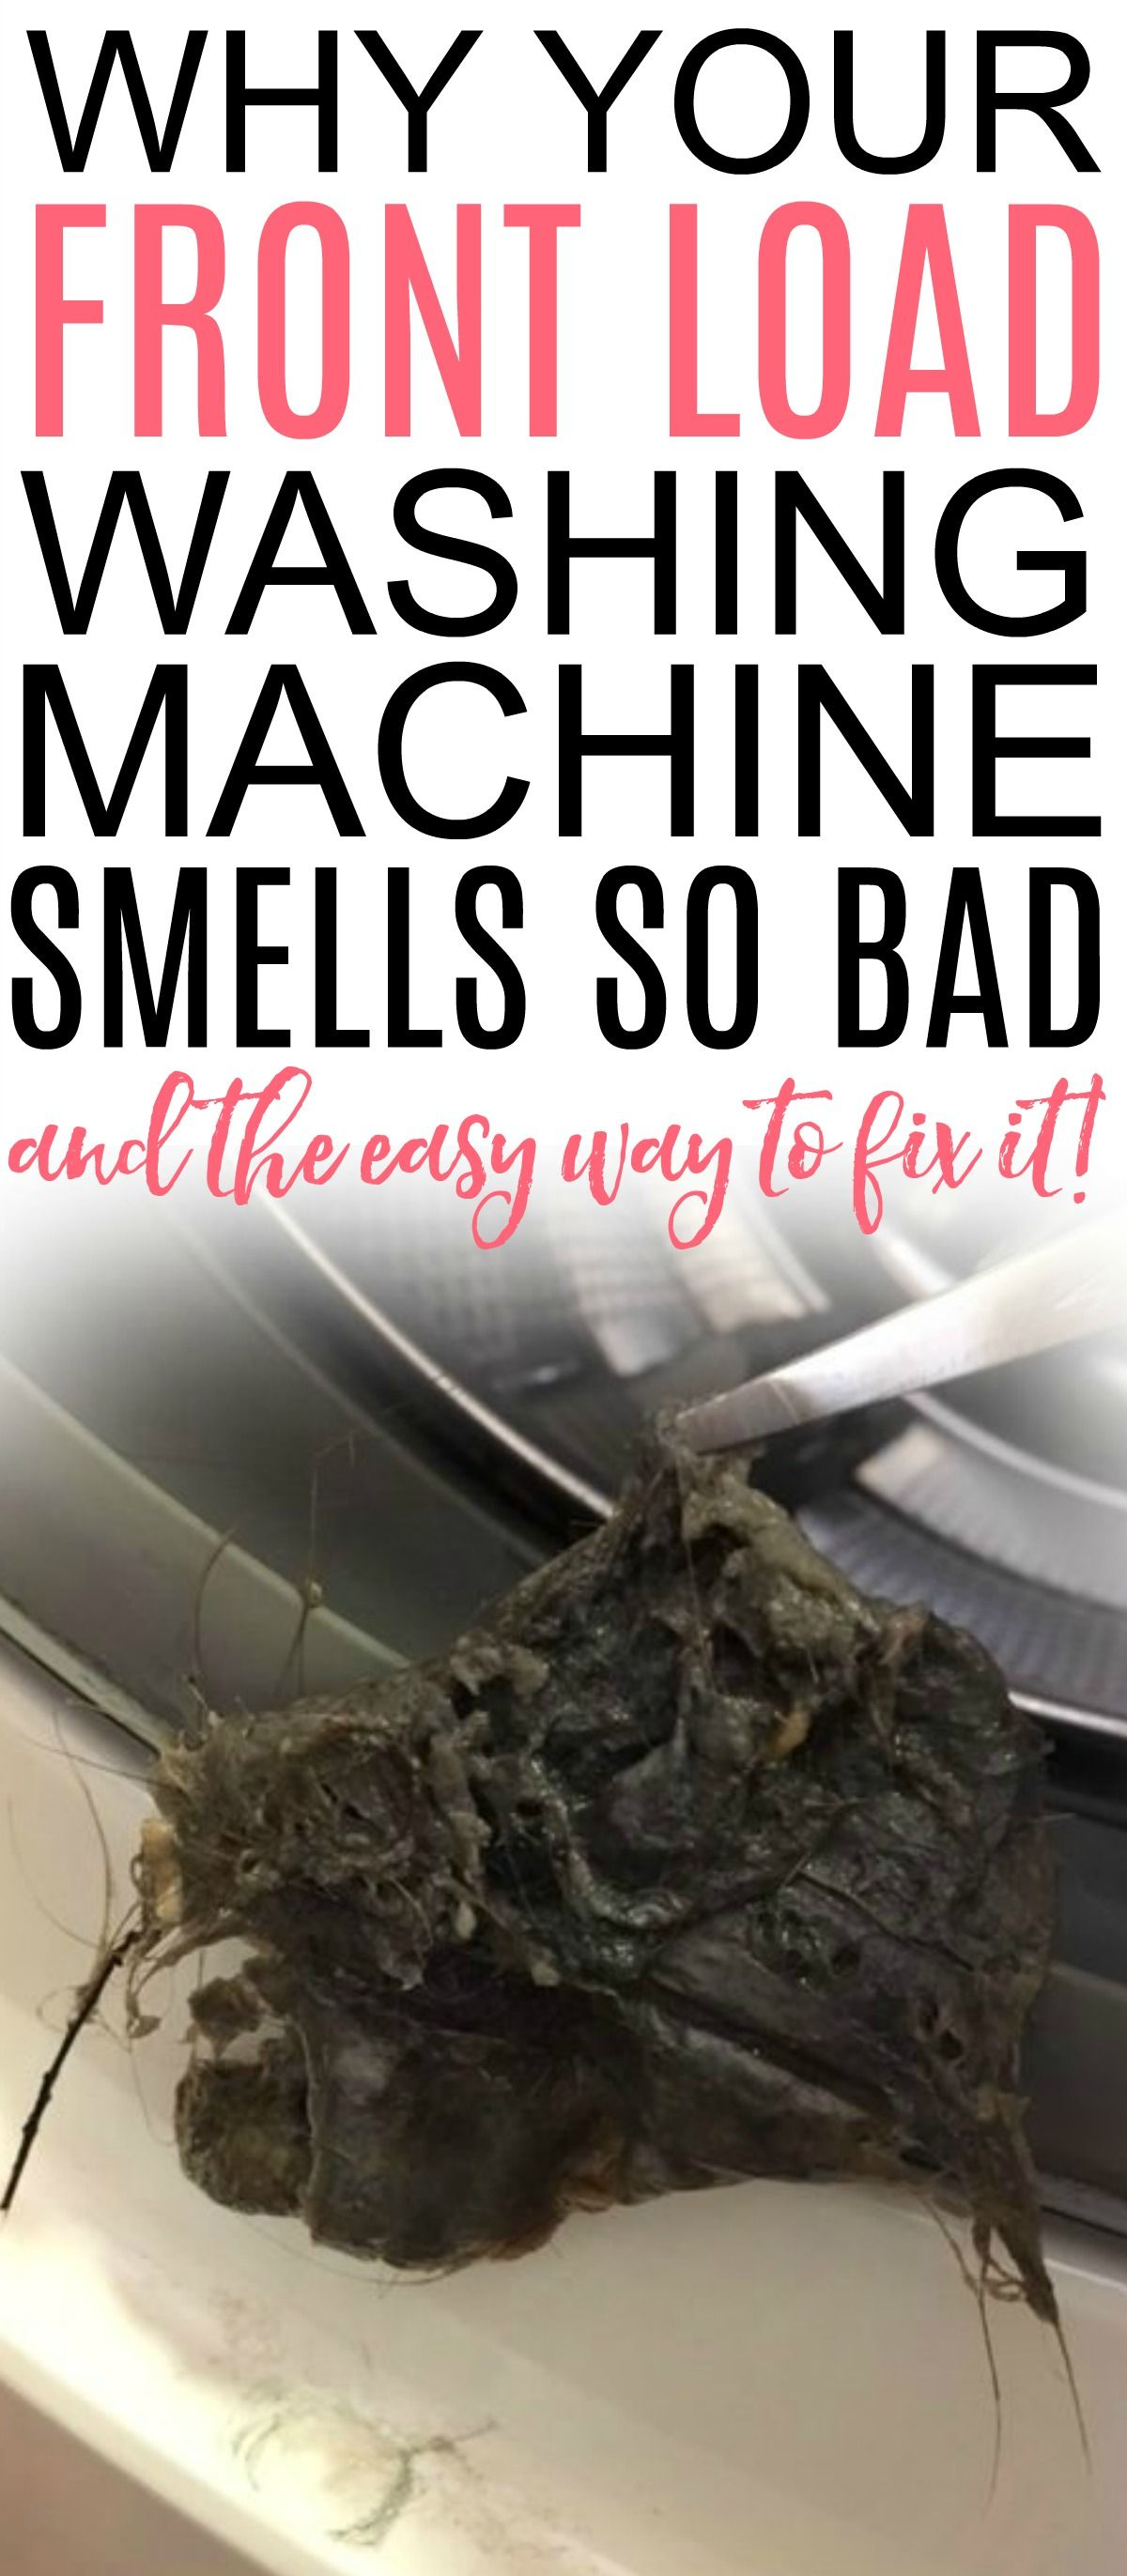 Front Load Washer Cleaning #cleaning